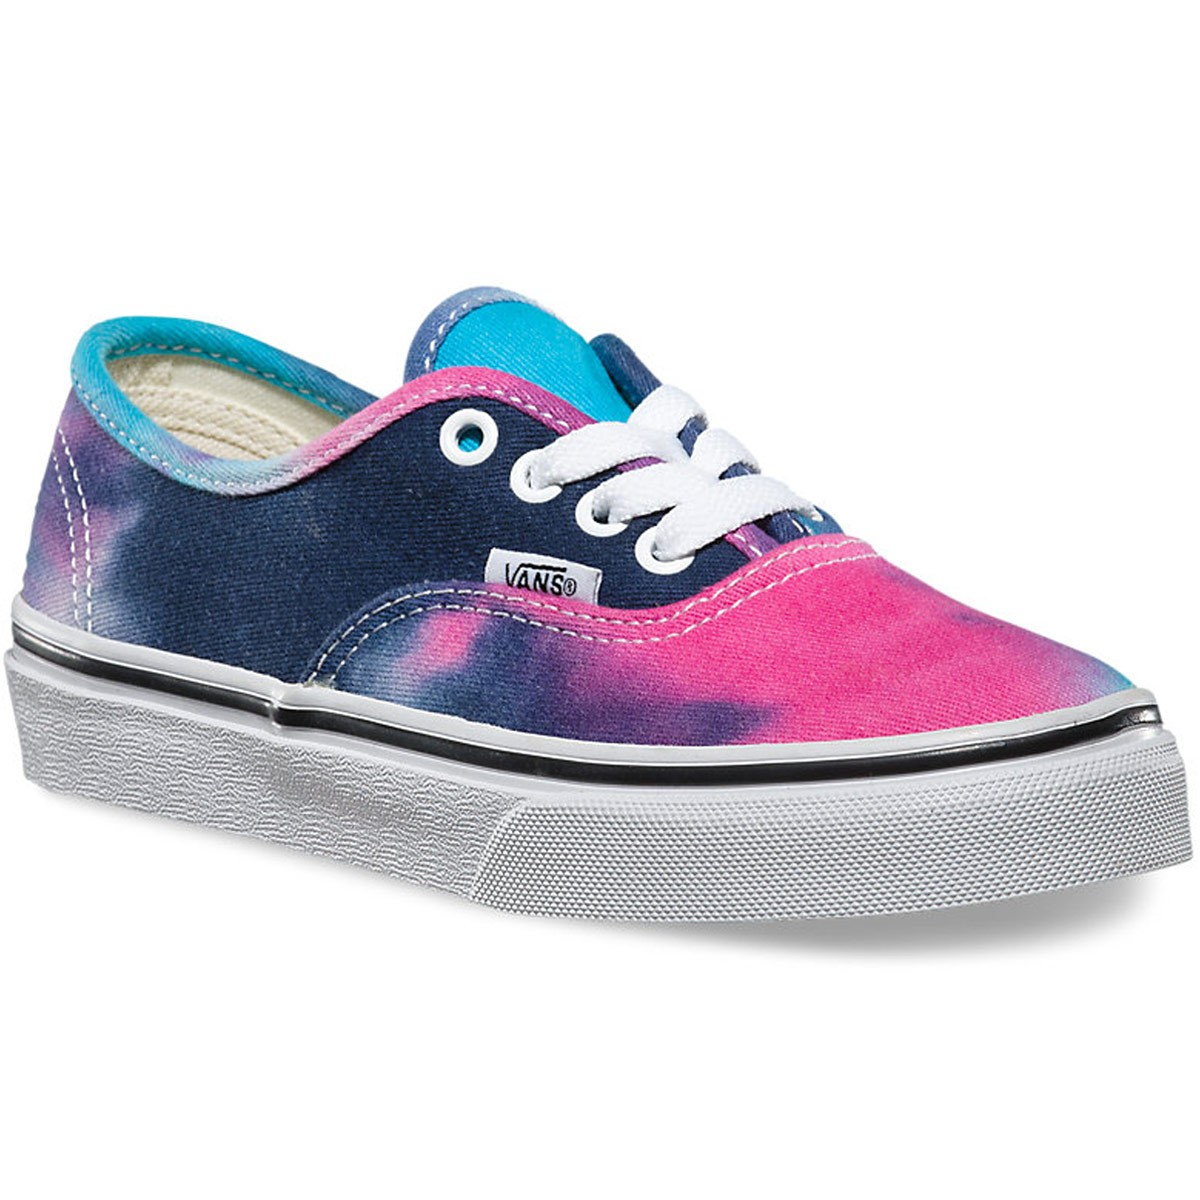 Best Skate Shoes For Girls